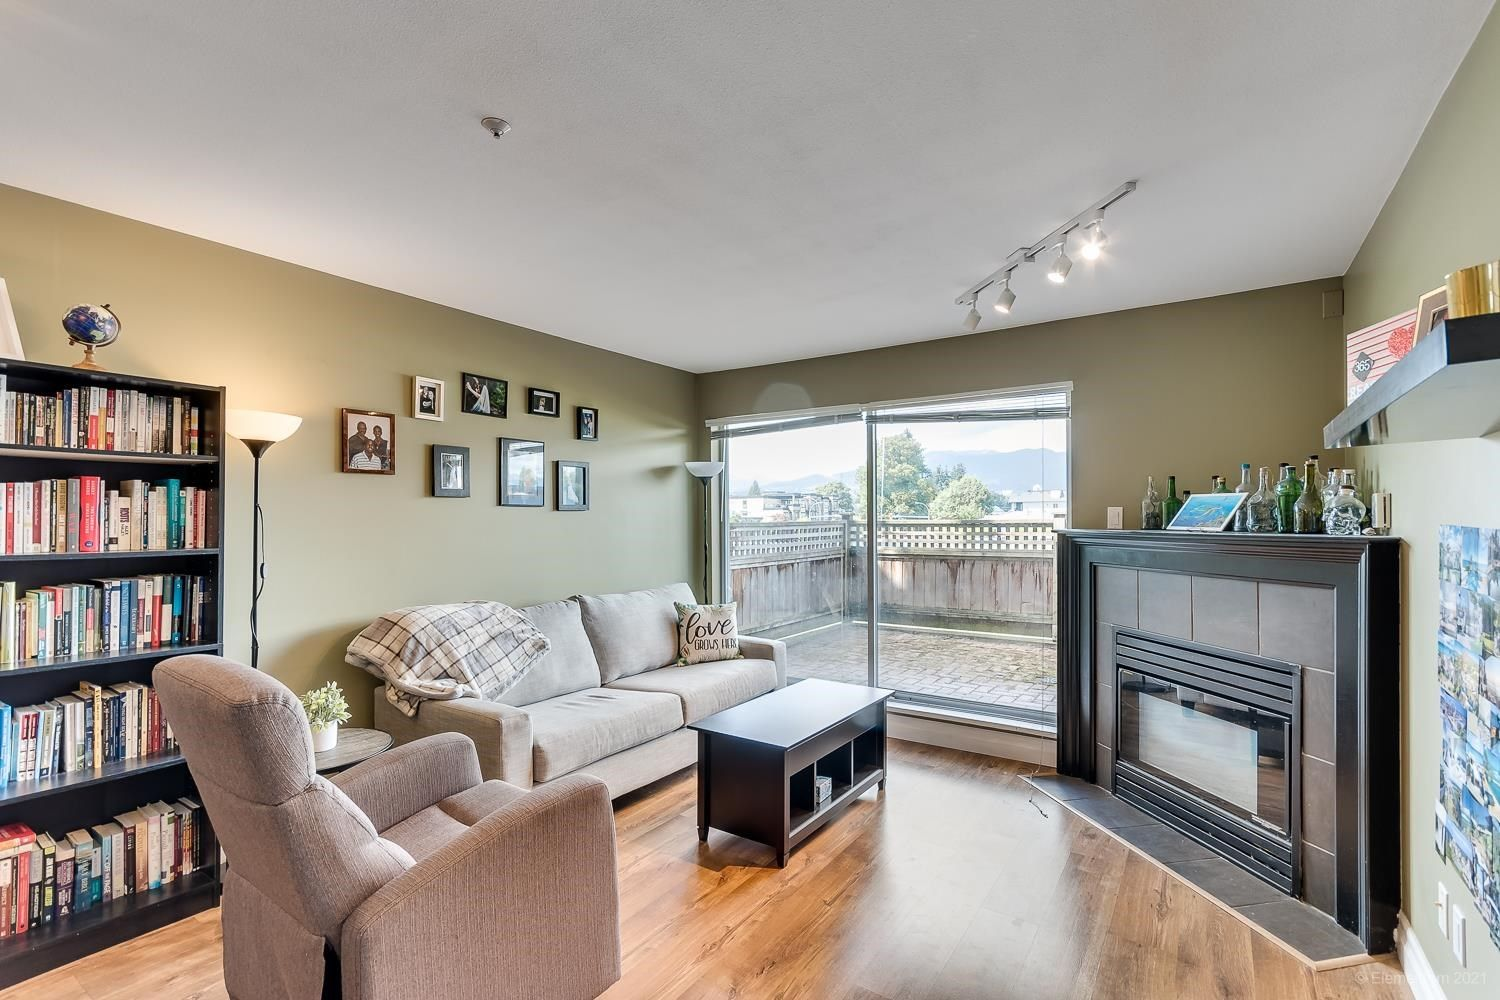 """Main Photo: 105 2285 PITT RIVER Road in Port Coquitlam: Central Pt Coquitlam Condo for sale in """"SHAUGHNESSY MANOR"""" : MLS®# R2594206"""